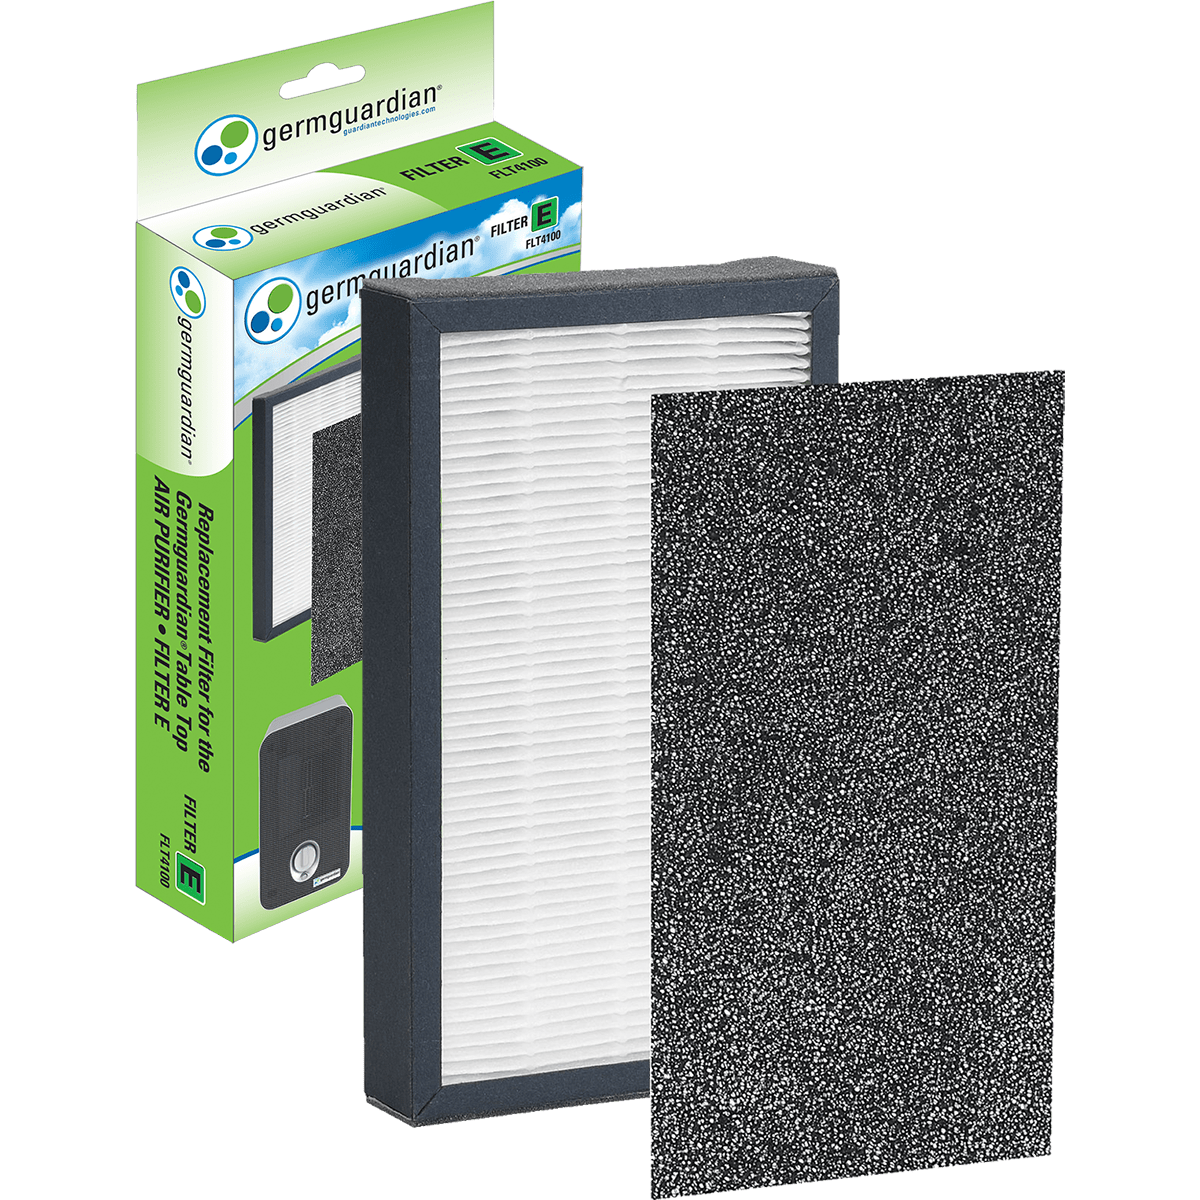 GermGuardian HEPA Replacement Filter E (FLT4100) ge3568